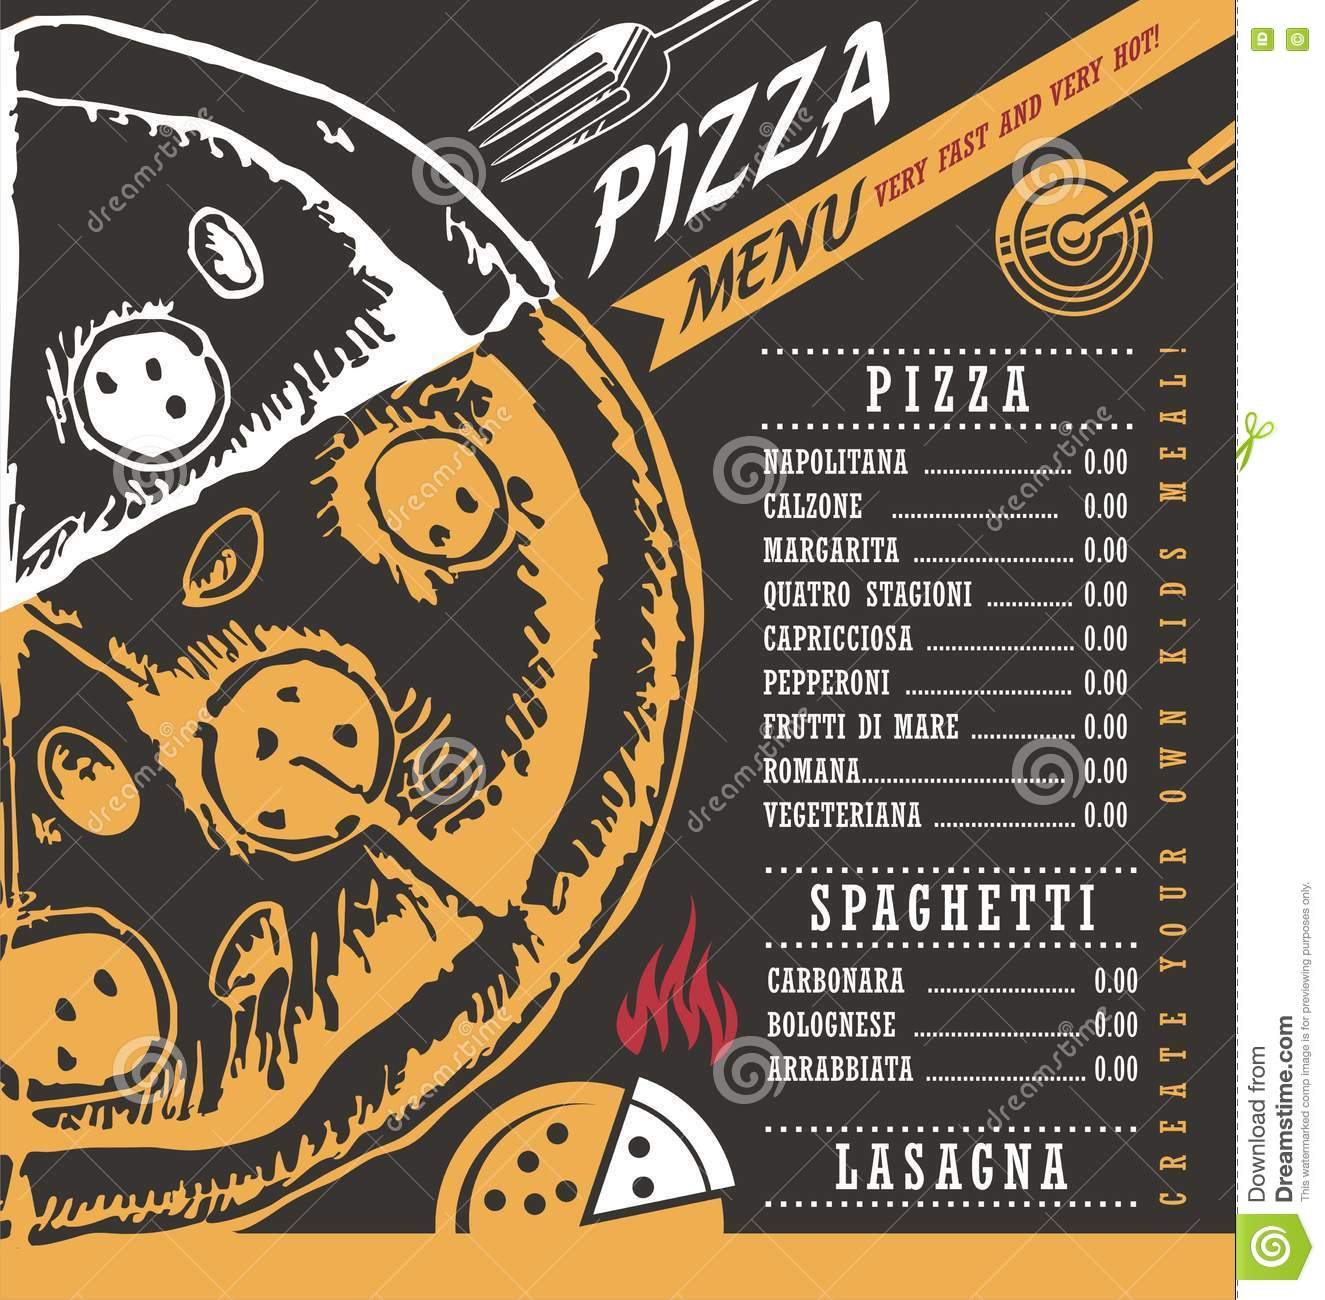 pizza menu design - Roberto.mattni.co